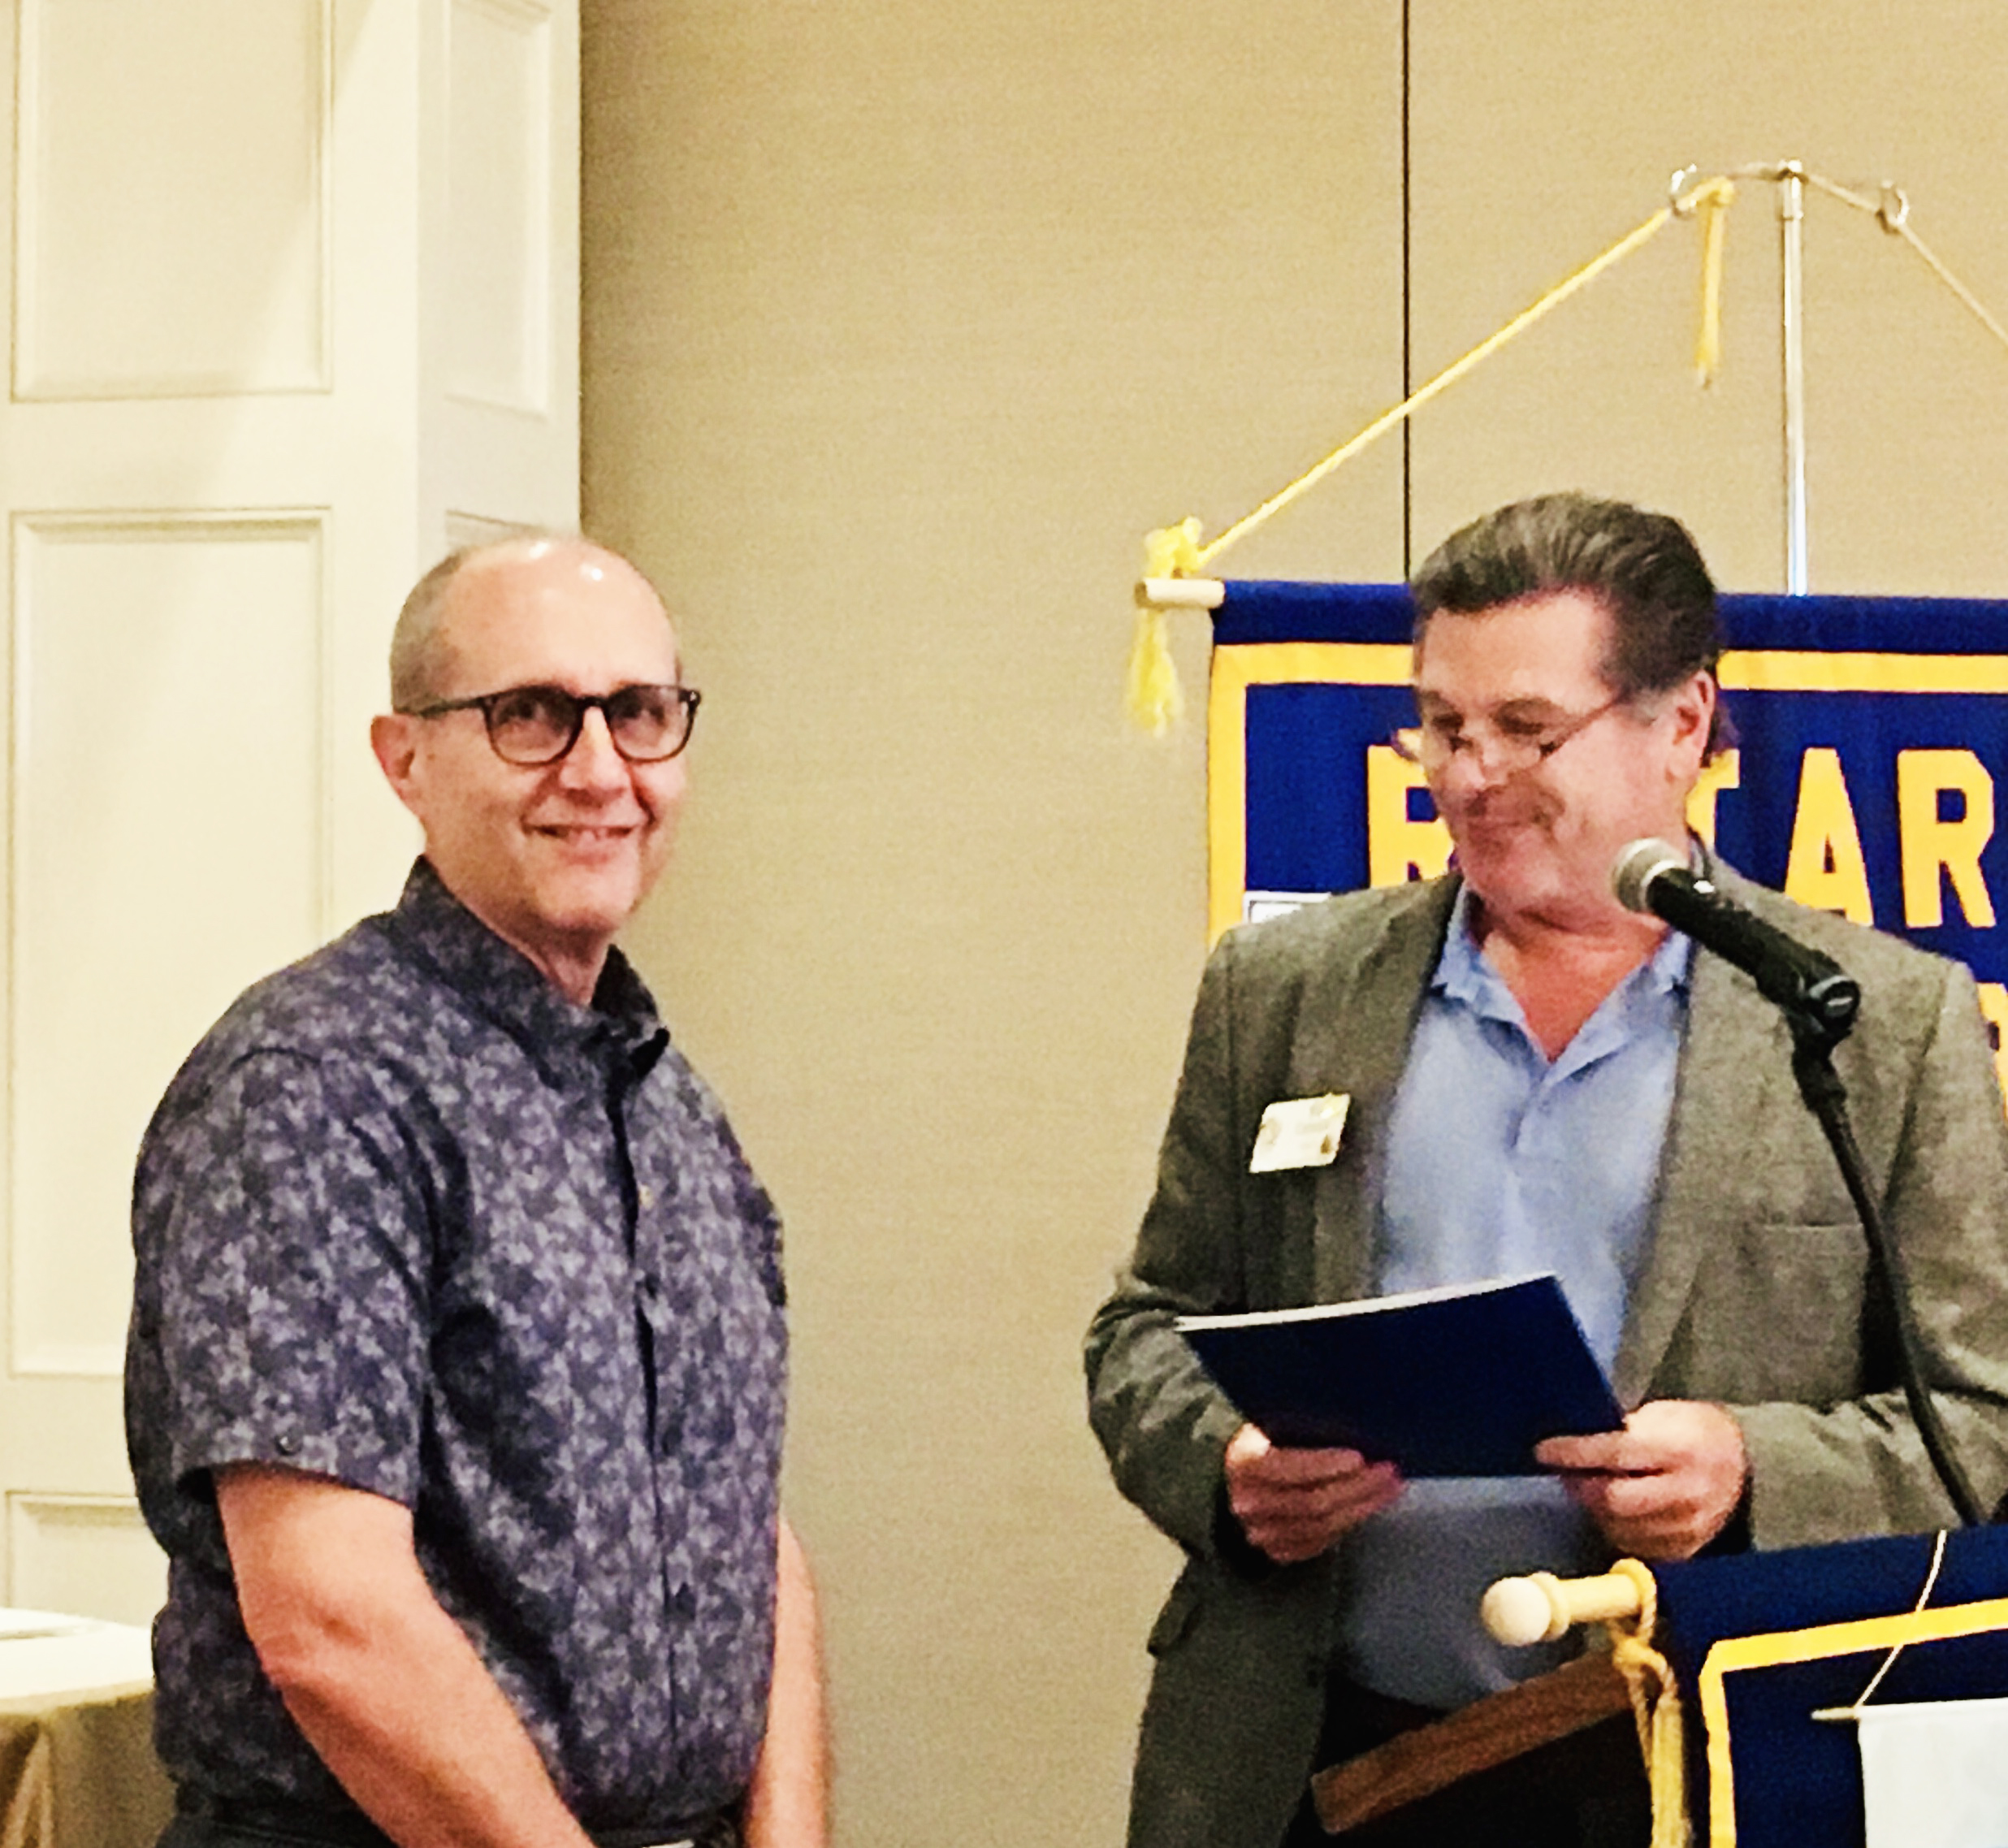 Ray Battocletti joined the DI Rotary Club this month. He is pictured with President Bill Cannon.